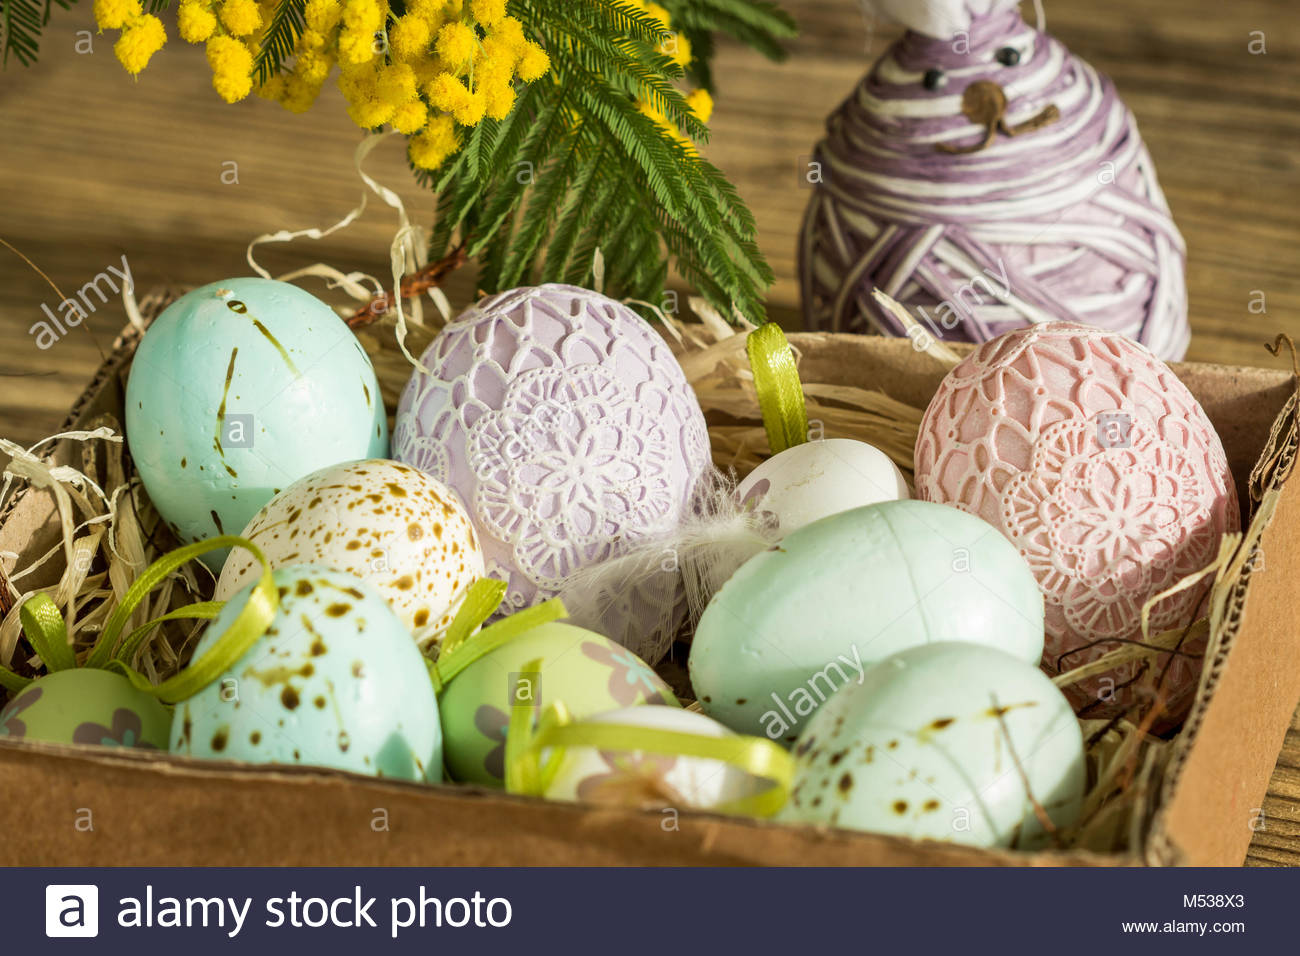 Hand Decorated Easter Eggs And Speckled Birds In Straw With A Branch Of Colorful Yellow Clusters Mimosa Flowers Natural Country Ba